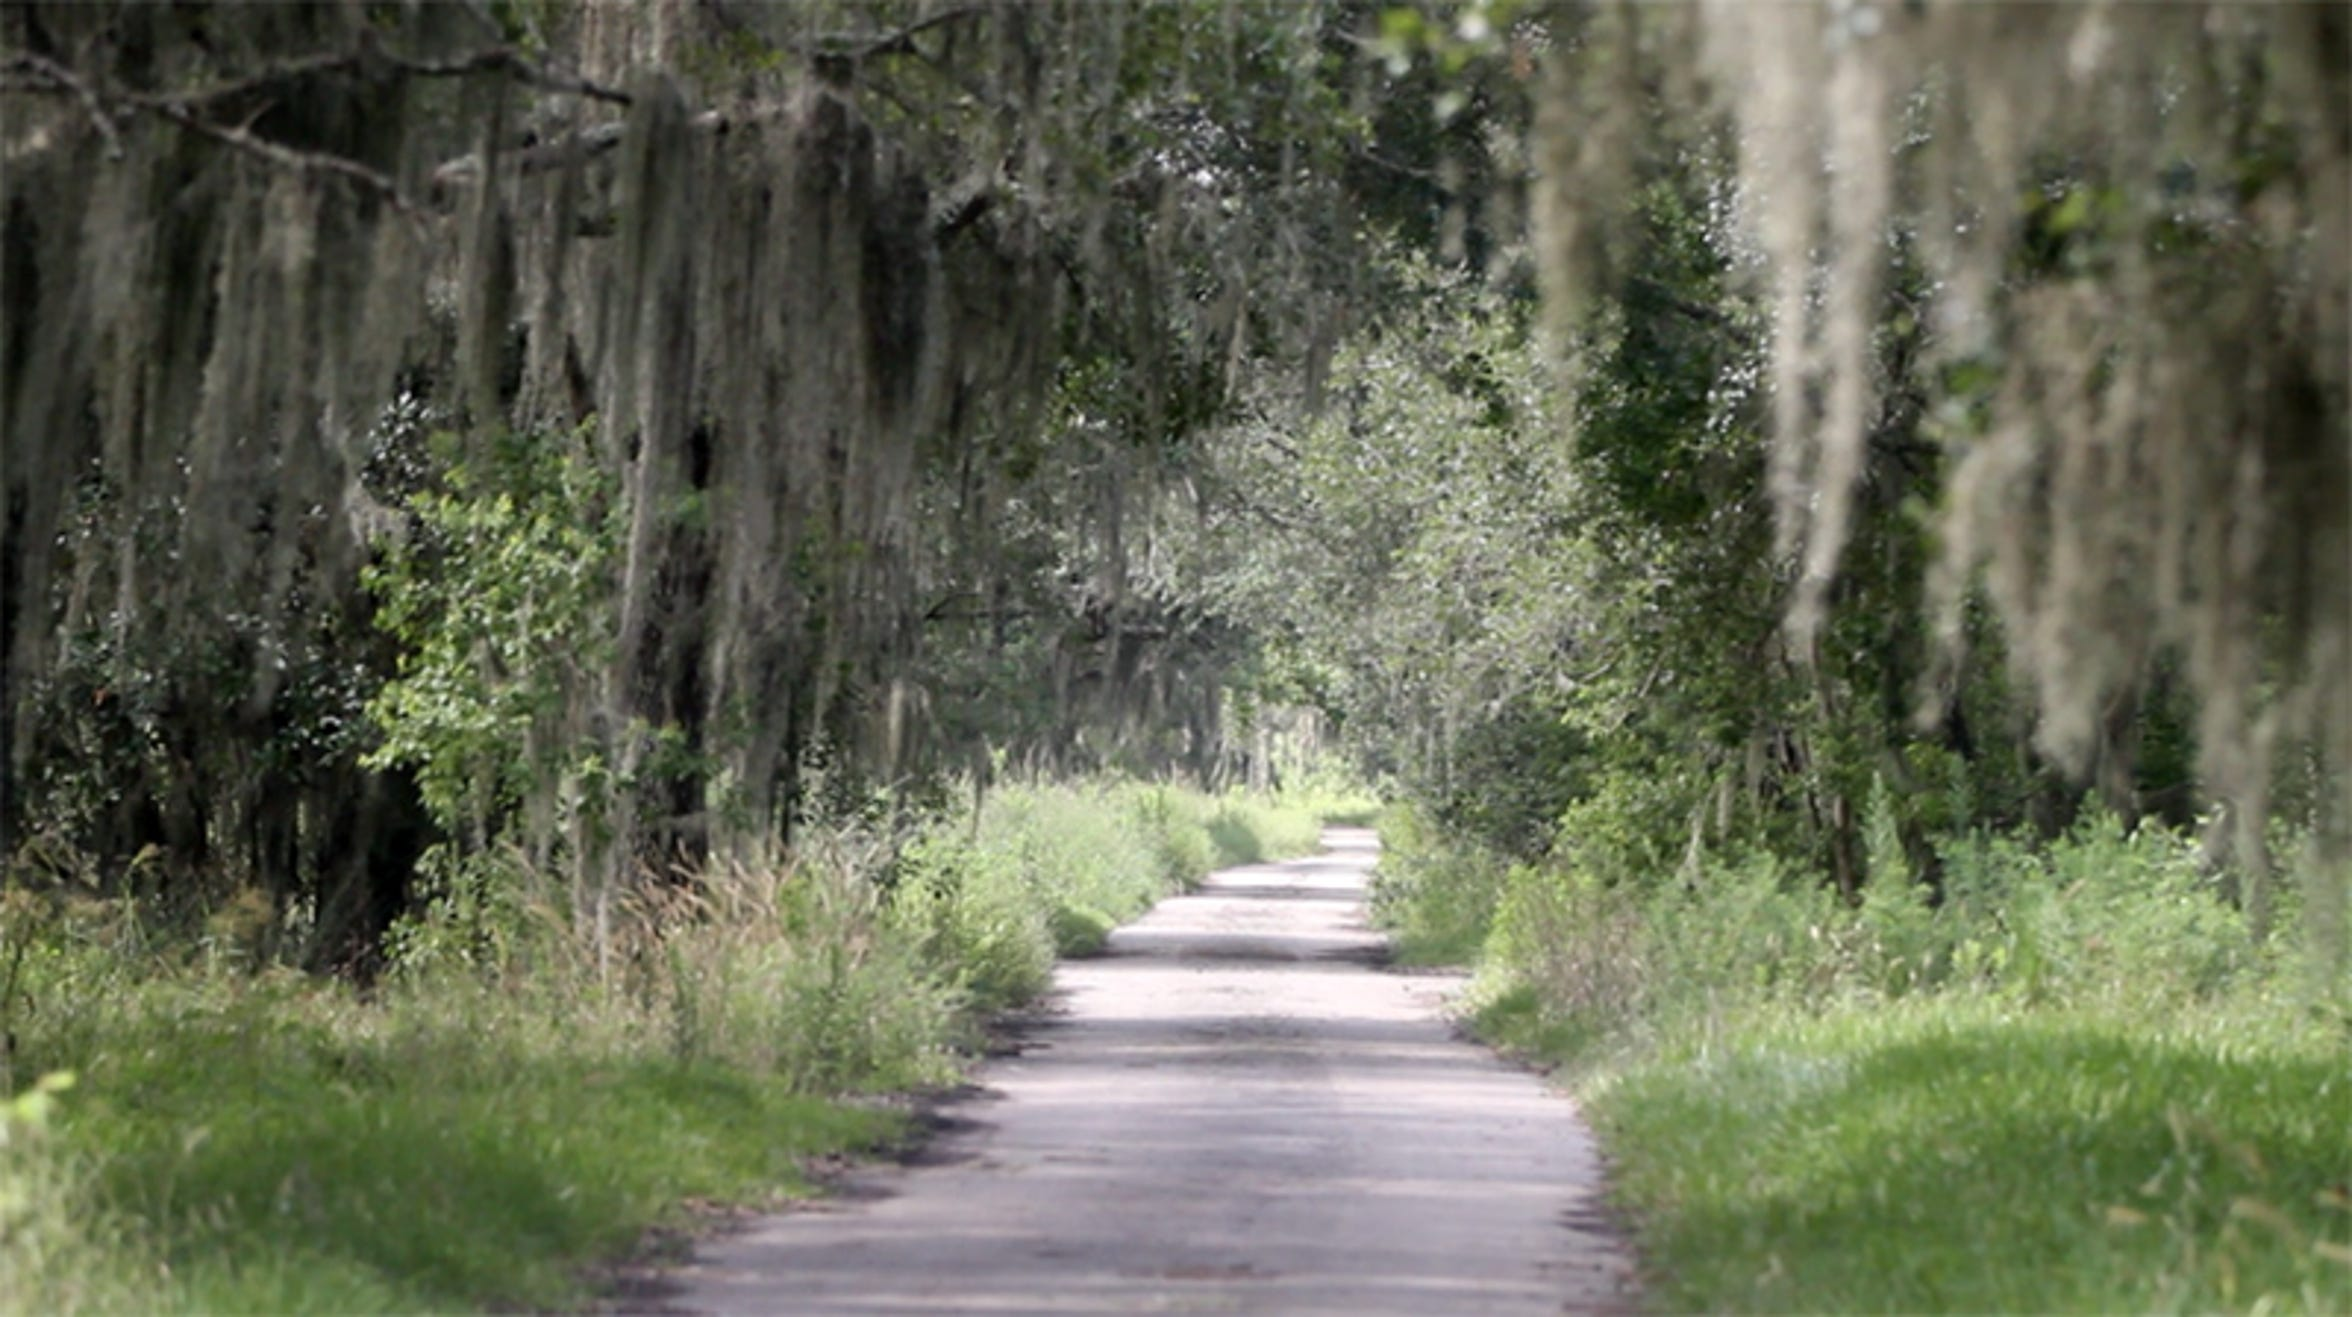 The road that leads to what's left of the Coca-Cola Mansion property is lined with overgrown grass and trees with cascading Spanish moss.